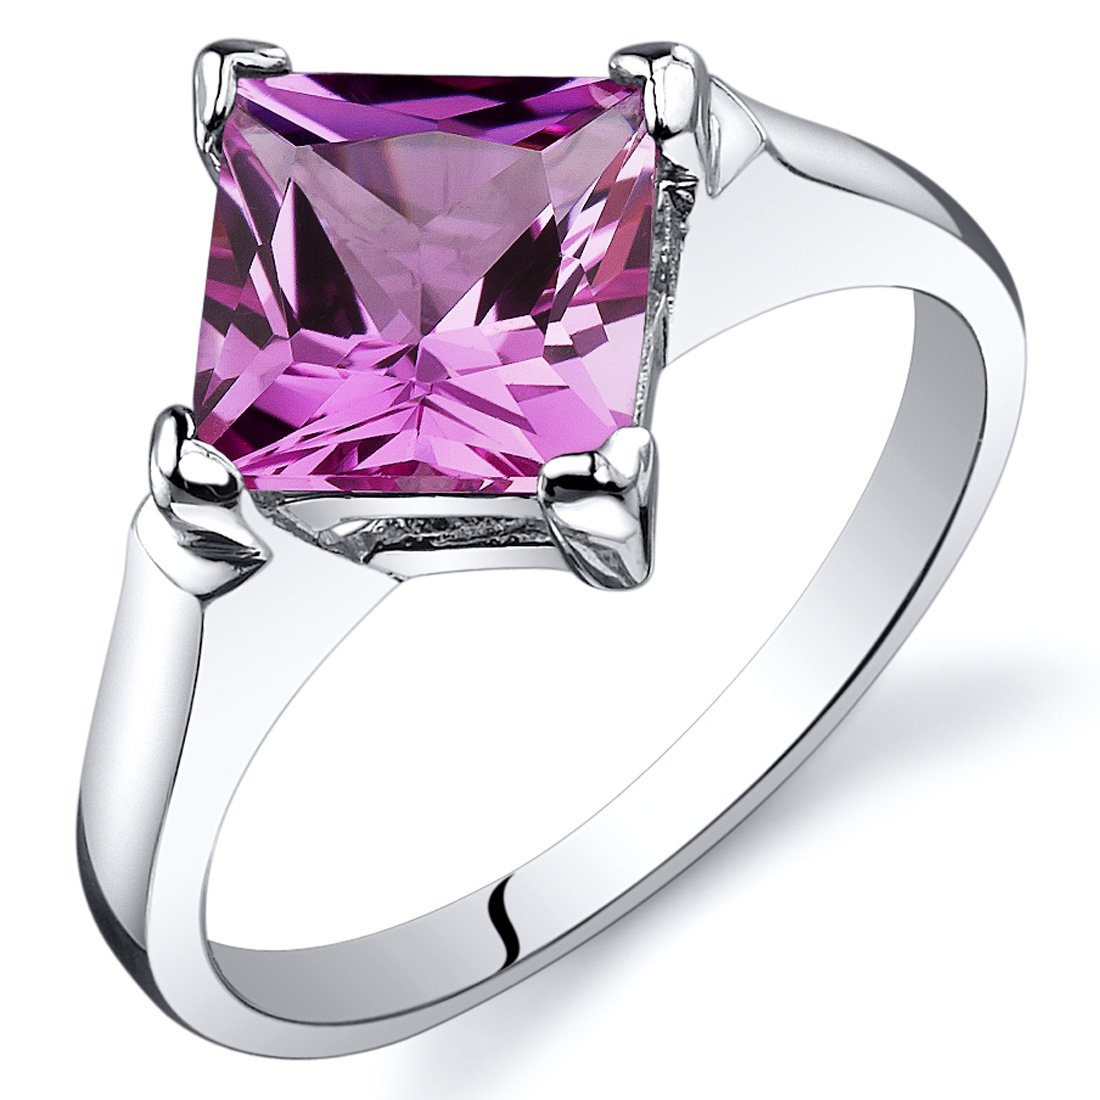 Created Pink Sapphire Engagement Ring Sterling Silver Rhodium Nickel Finish 2.25 Carats Size 7